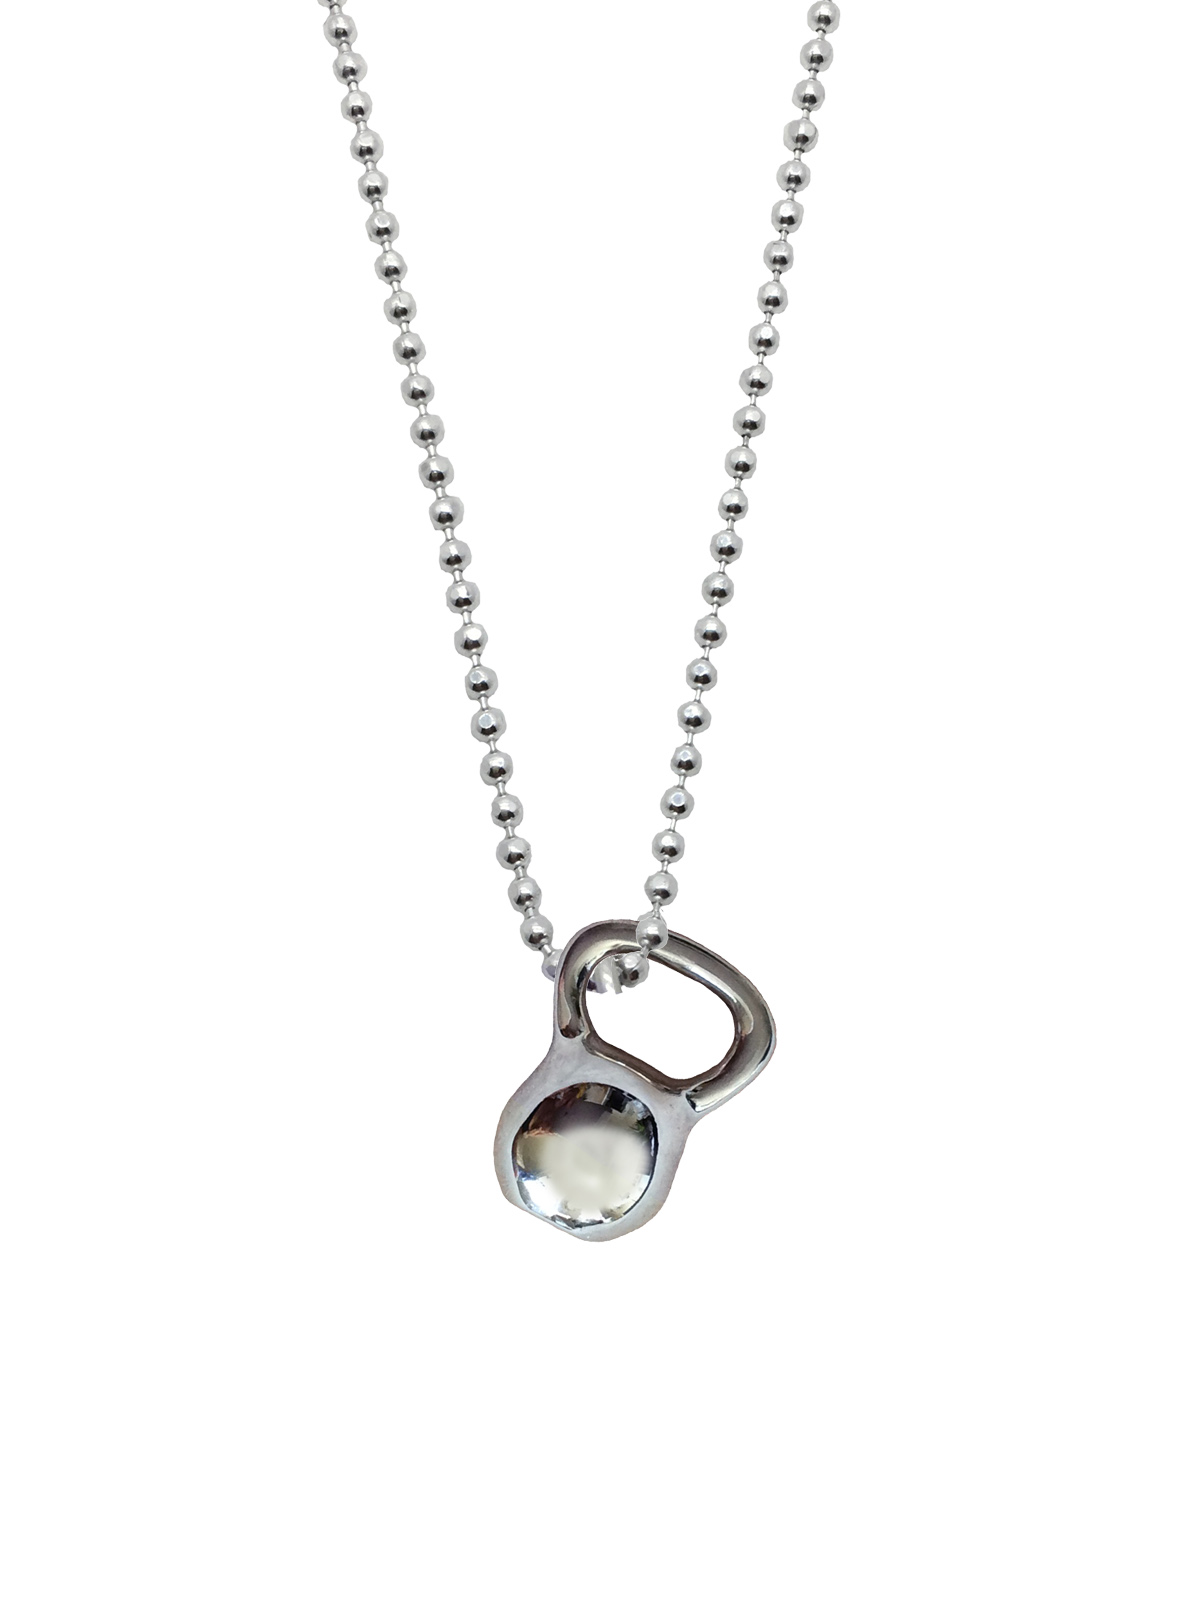 Silver KB Necklace-hr-thumb.jpg